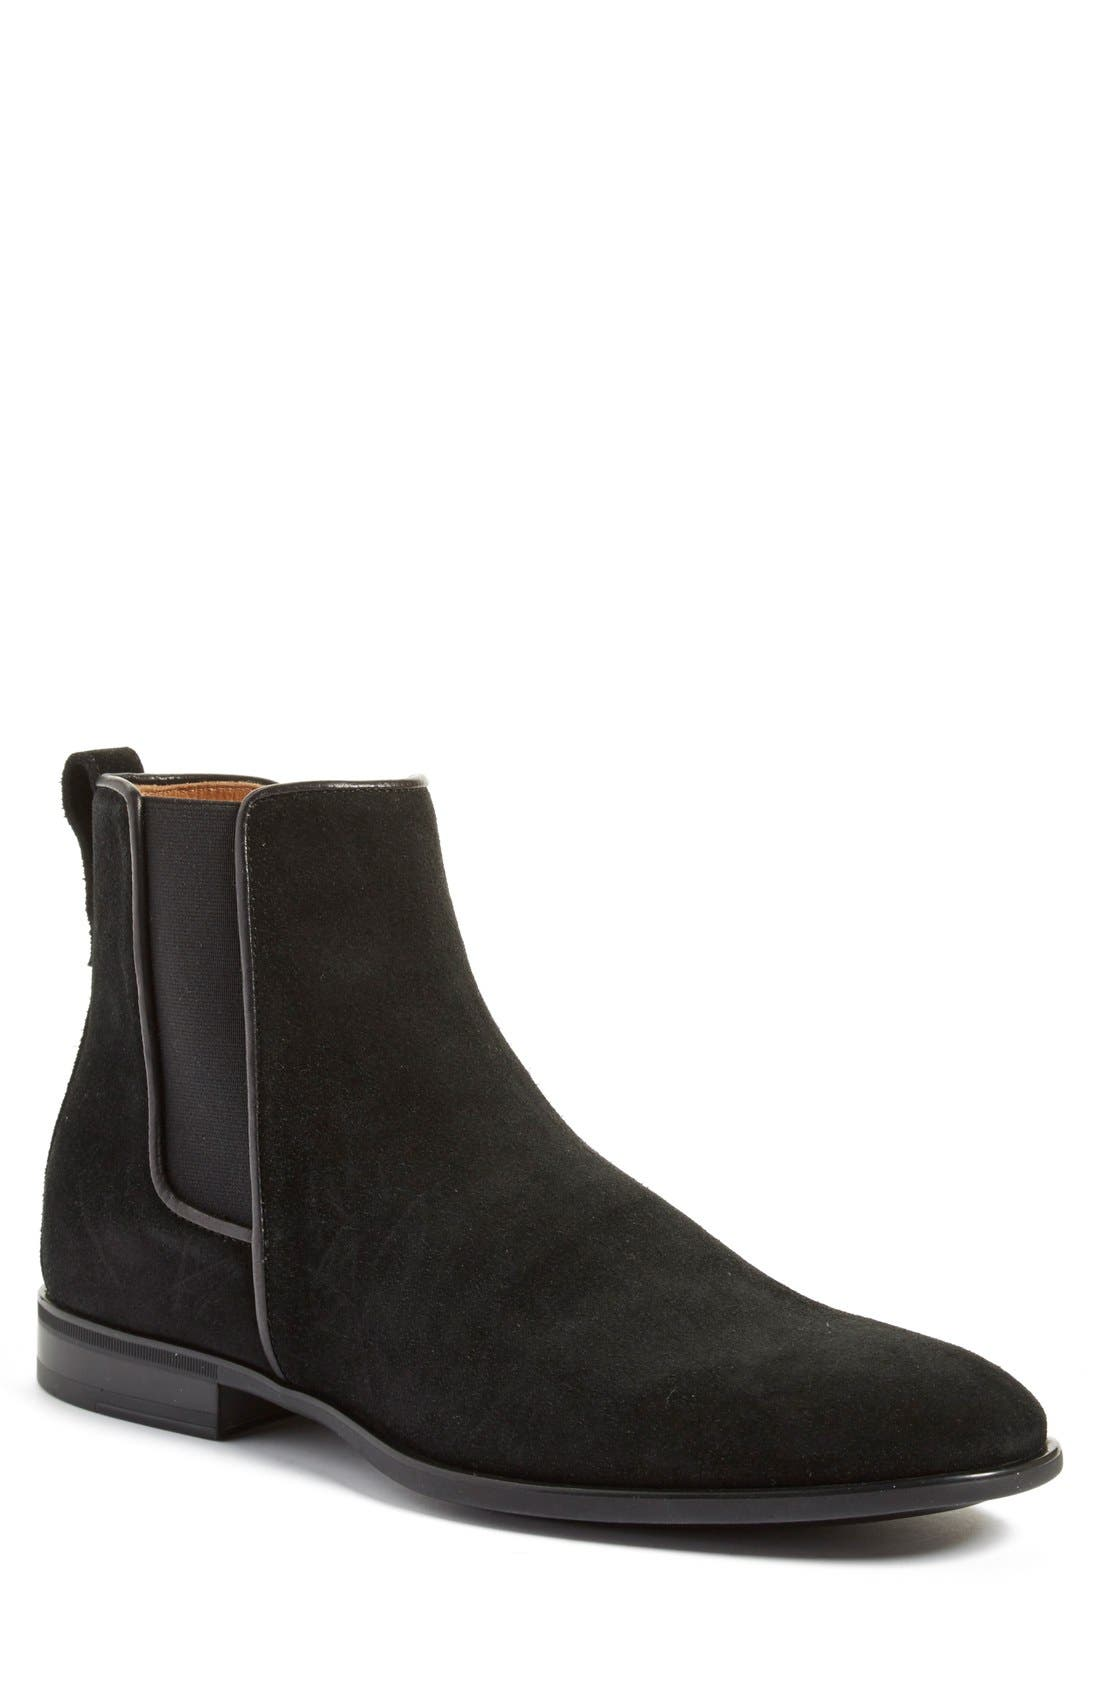 'Adrian' Weatherproof Chelsea Boot,                             Main thumbnail 1, color,                             Black Suede